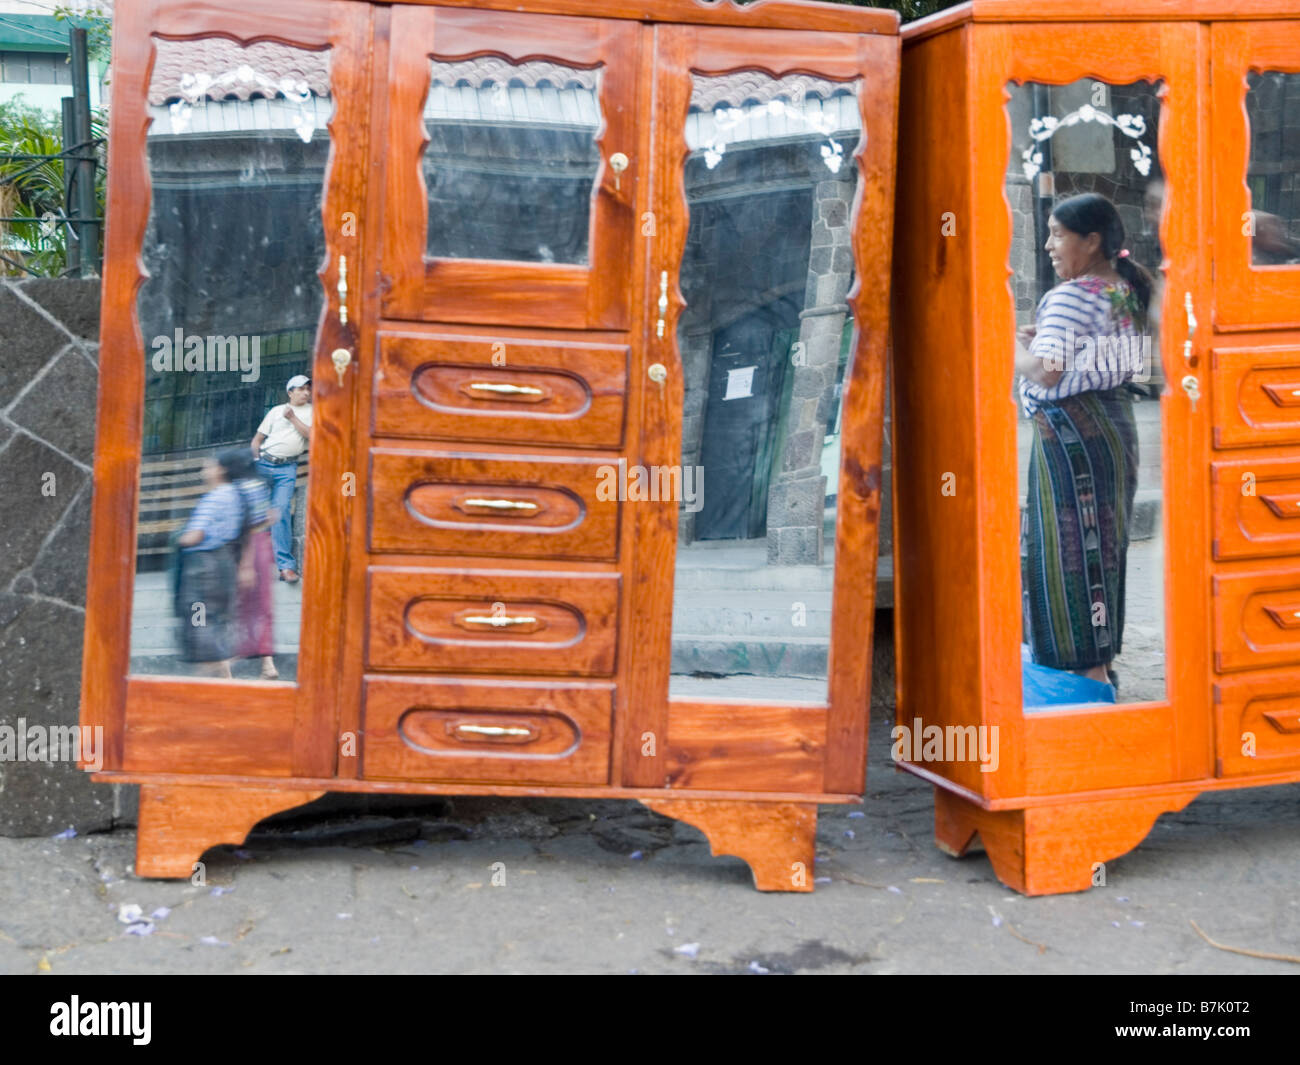 Mirrored dresser on display - Stock Image